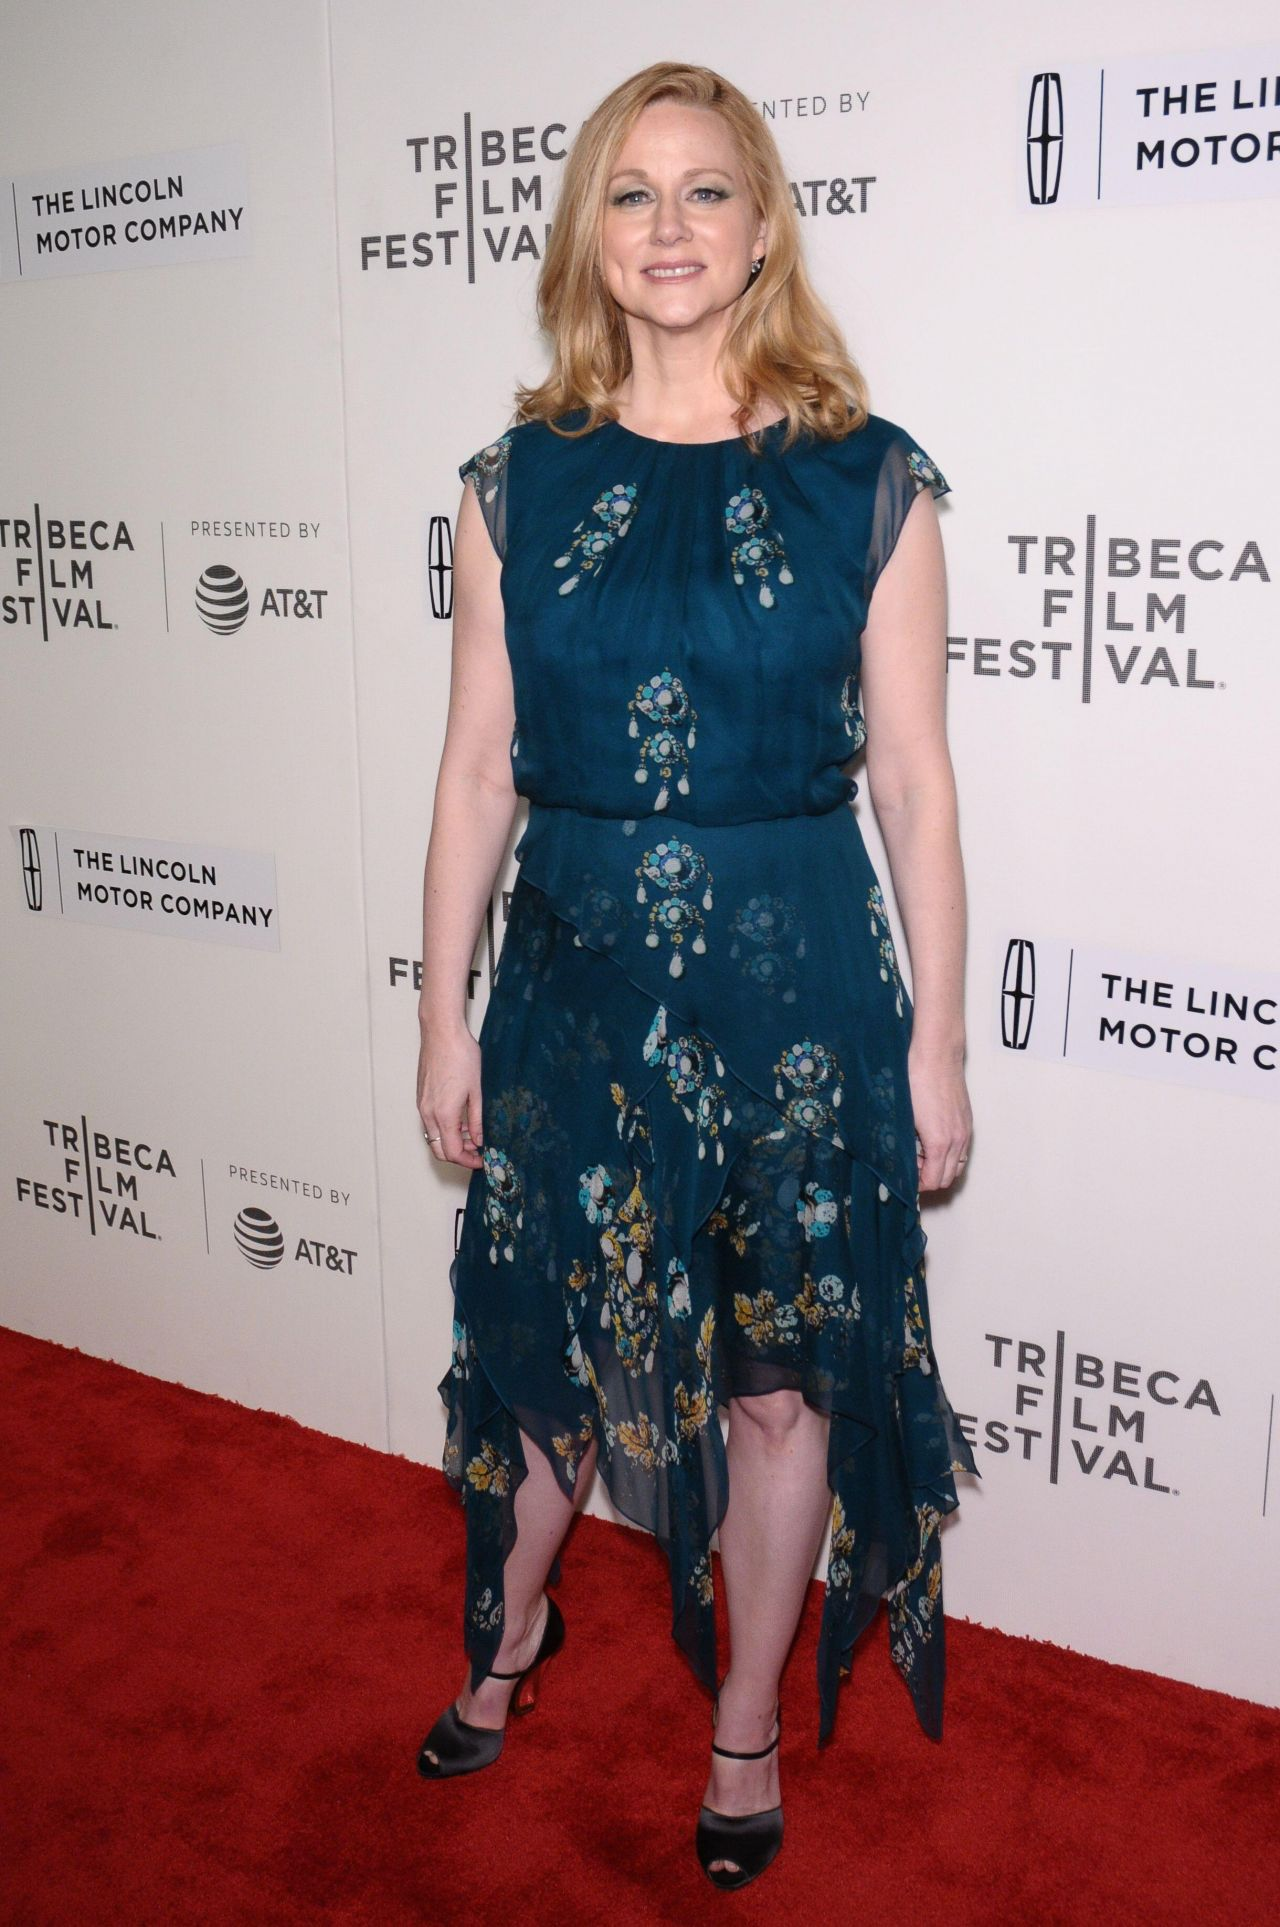 Laura Linney Quot The Dinner Quot World Premiere 2017 Tff In Nyc